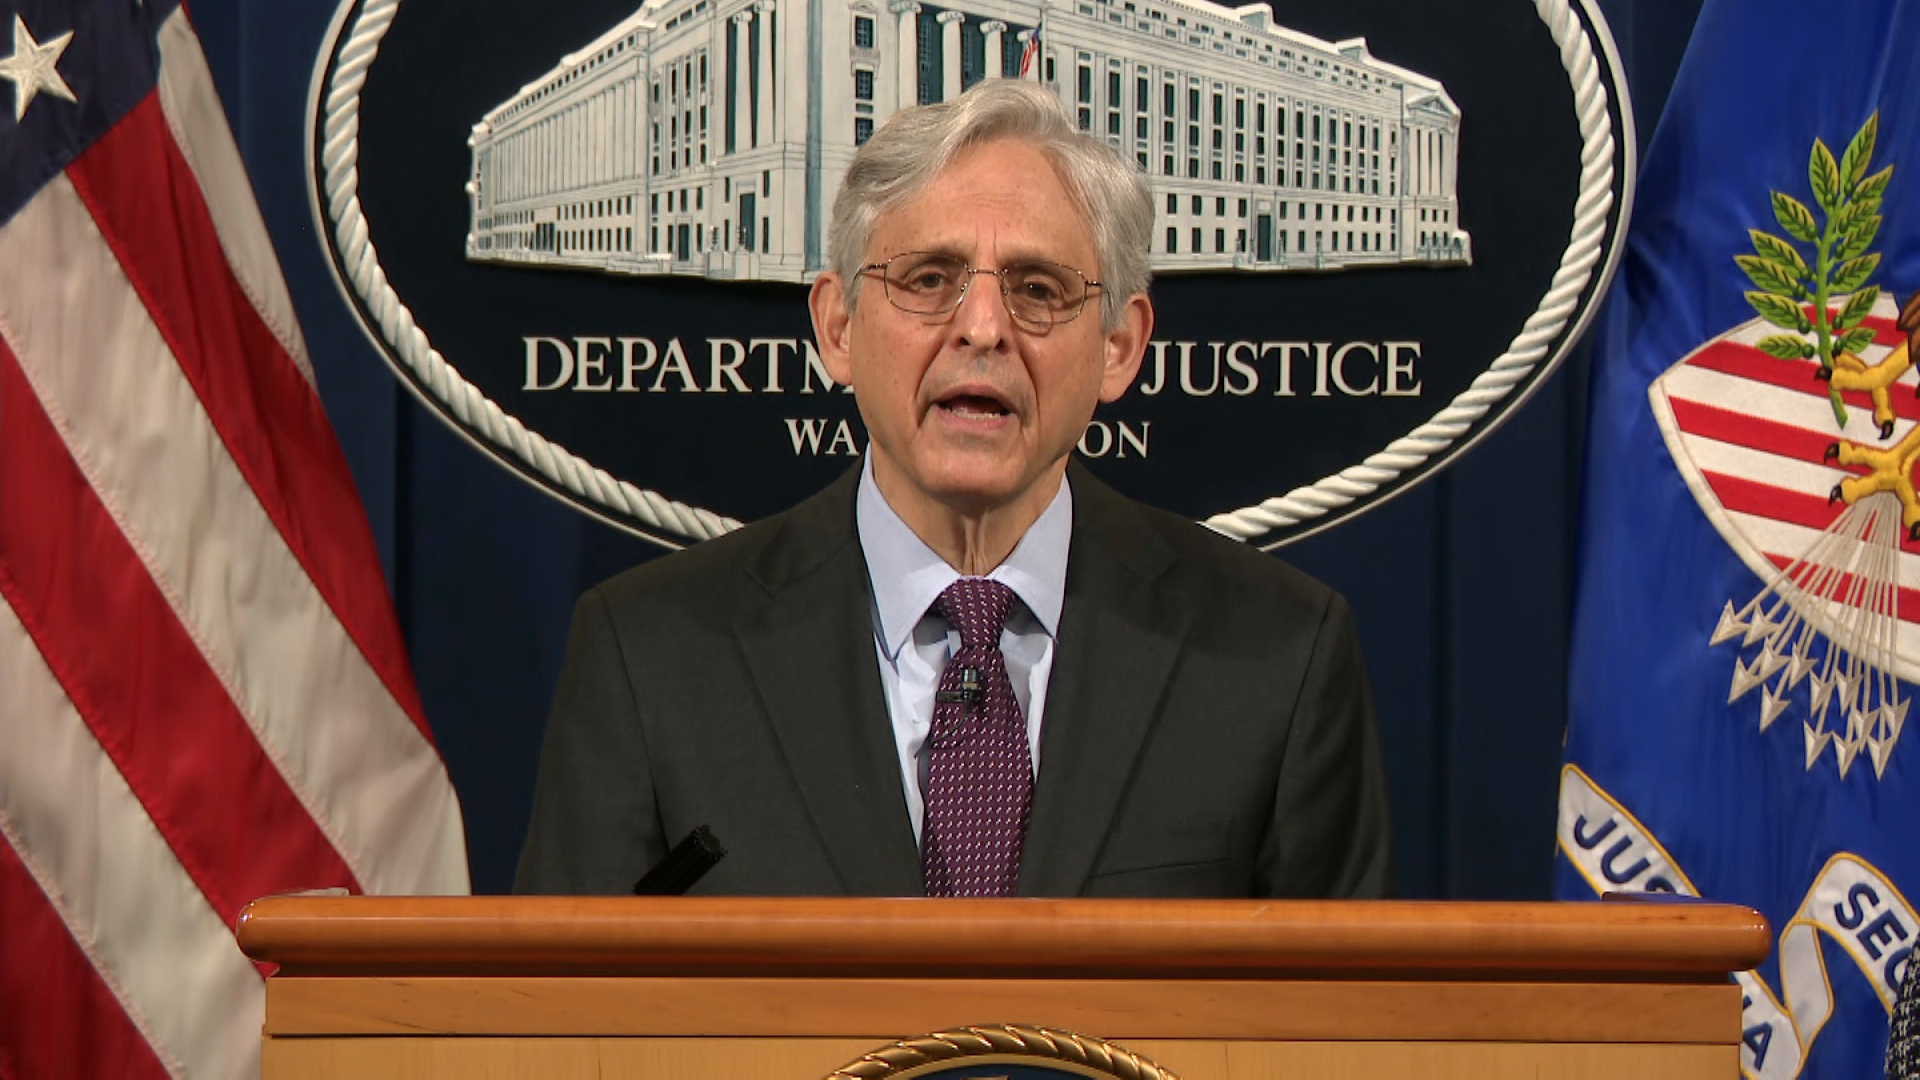 Attorney General Garland and Homeland Security Secretary Mayorkas tout anti-domestic terror efforts